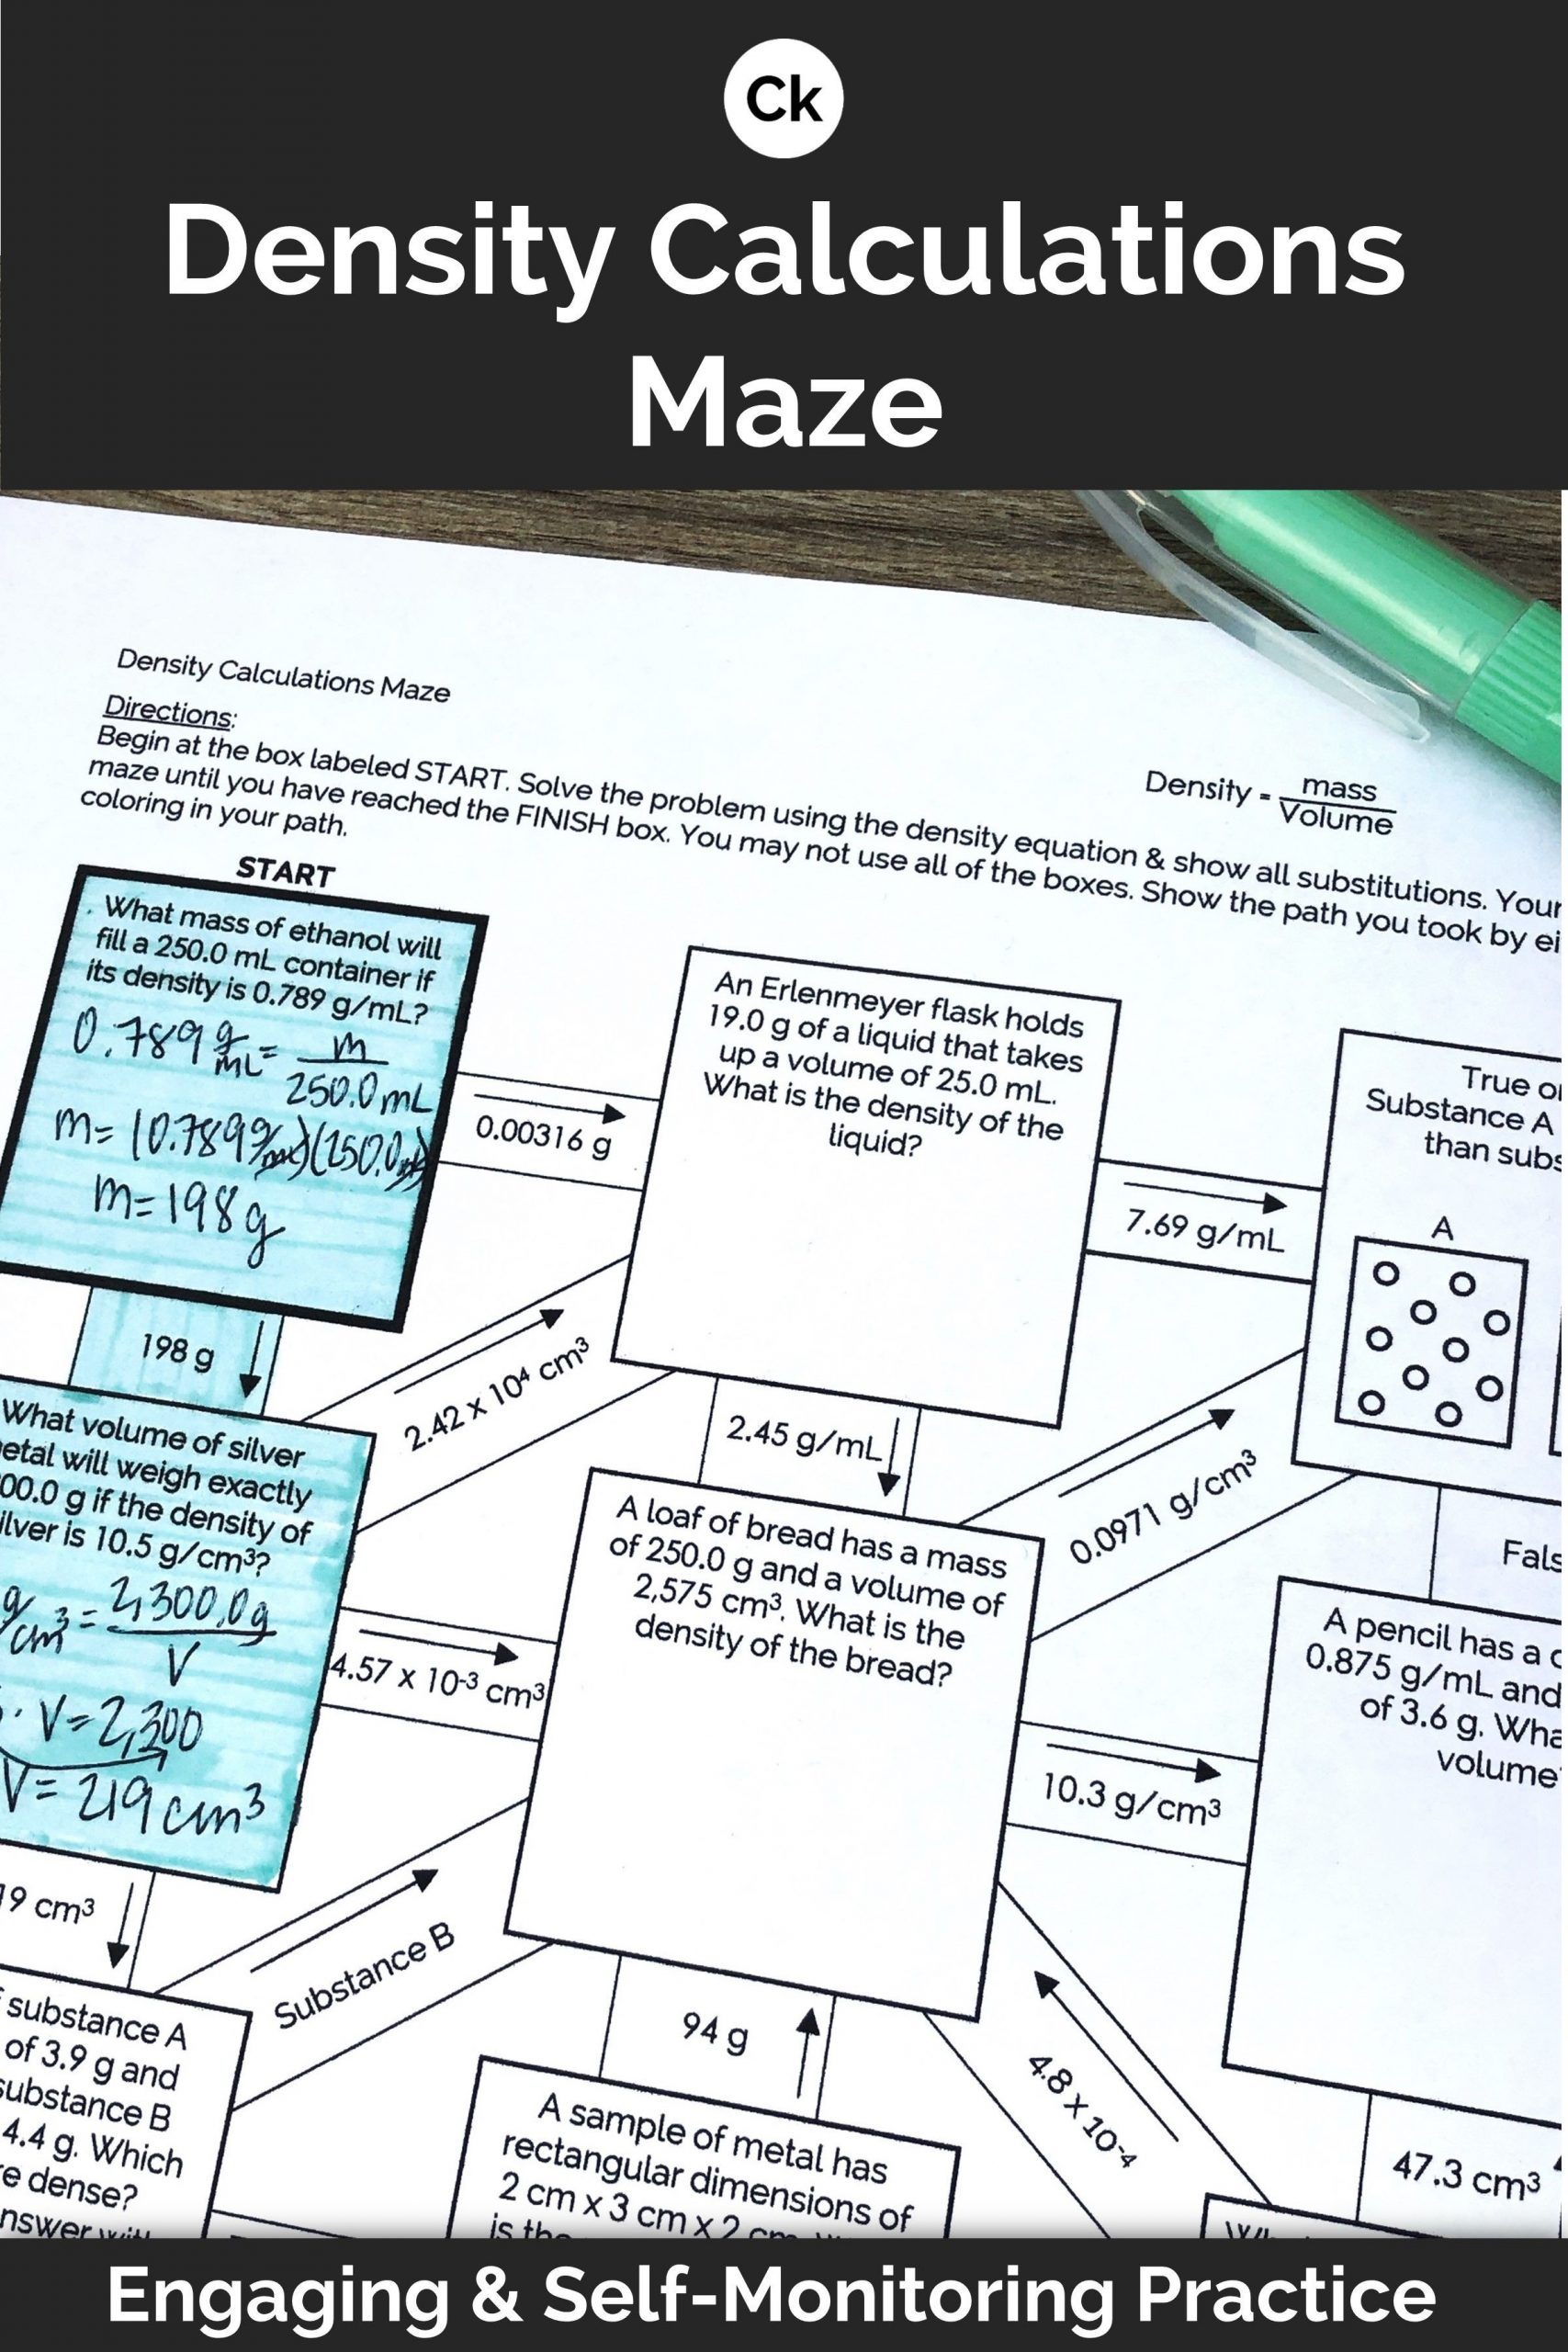 Density Worksheet Middle School Density Mazes Calculations and Conceptual Visual Worksheet